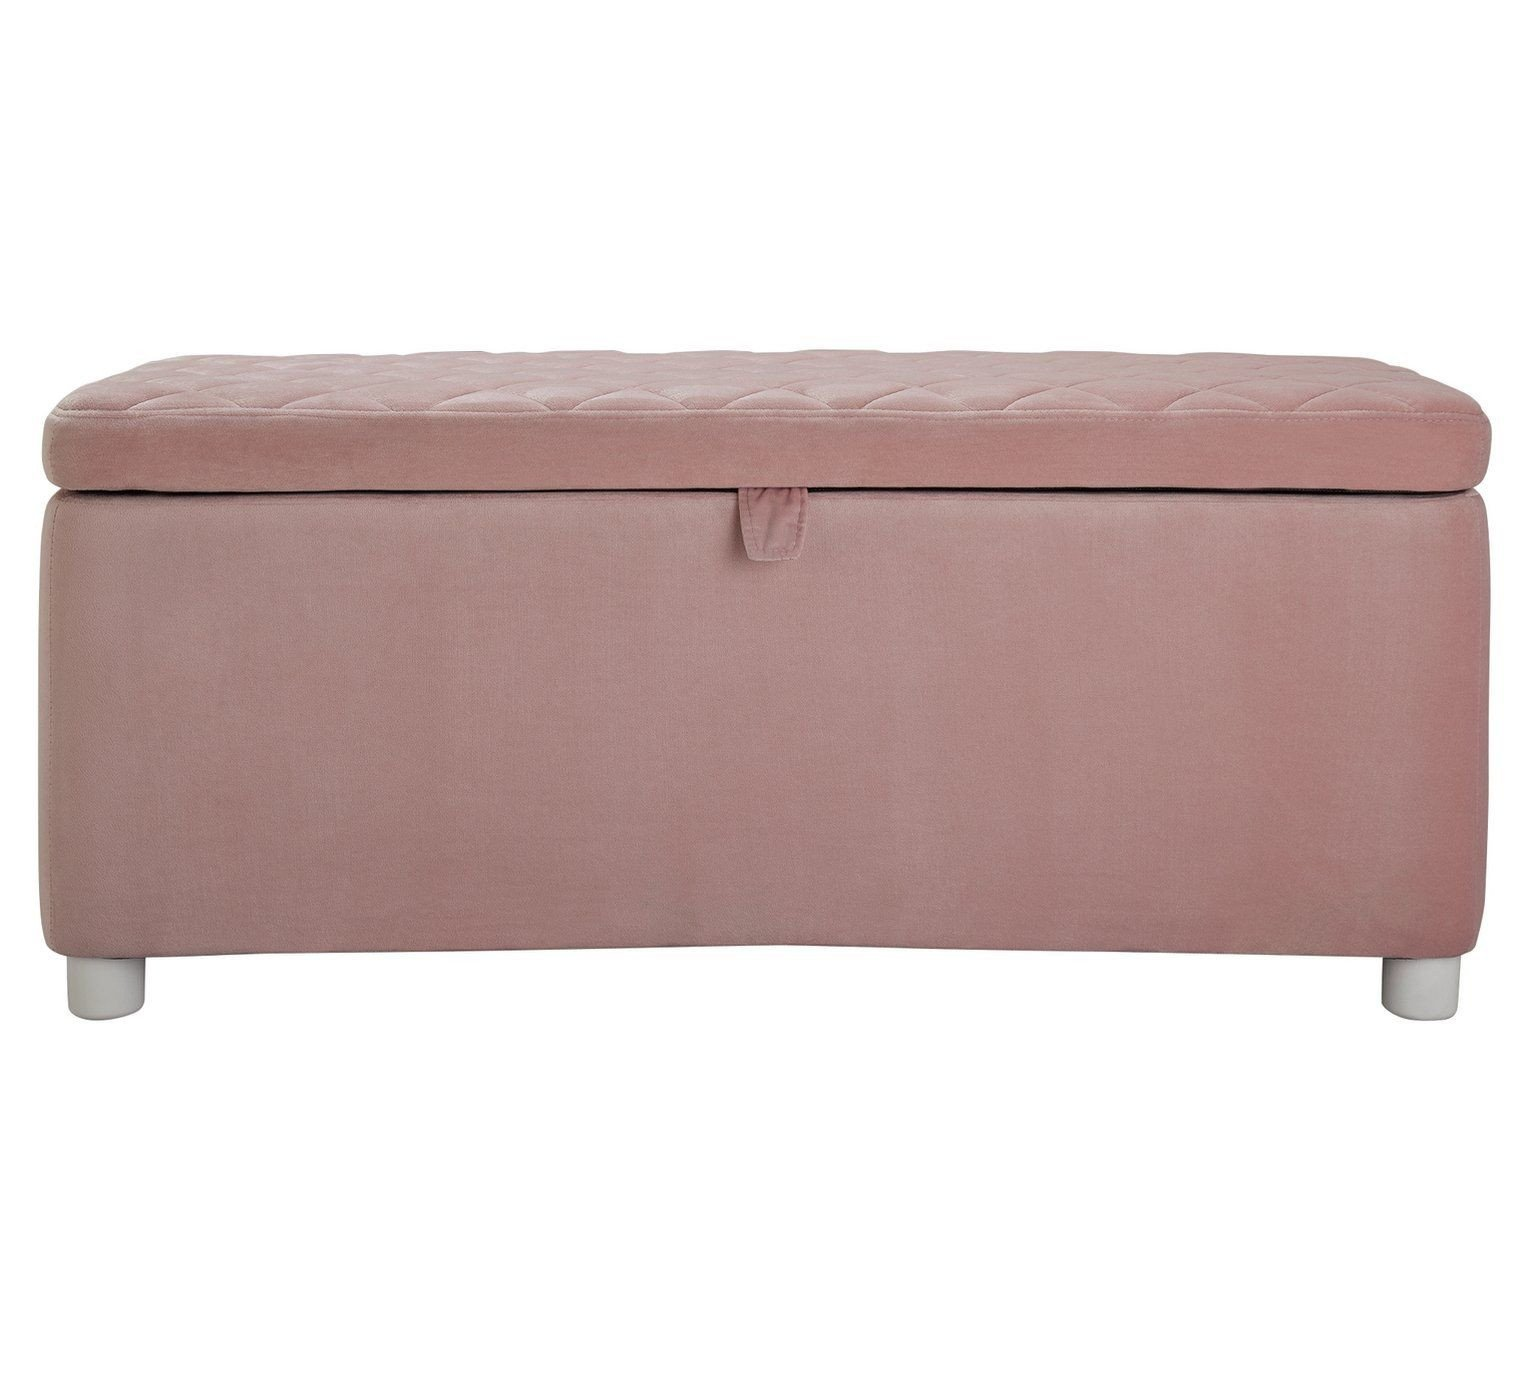 King Size Bedroom Benches Elegant Buy Argos Home Velvet Ottoman Blush Pink